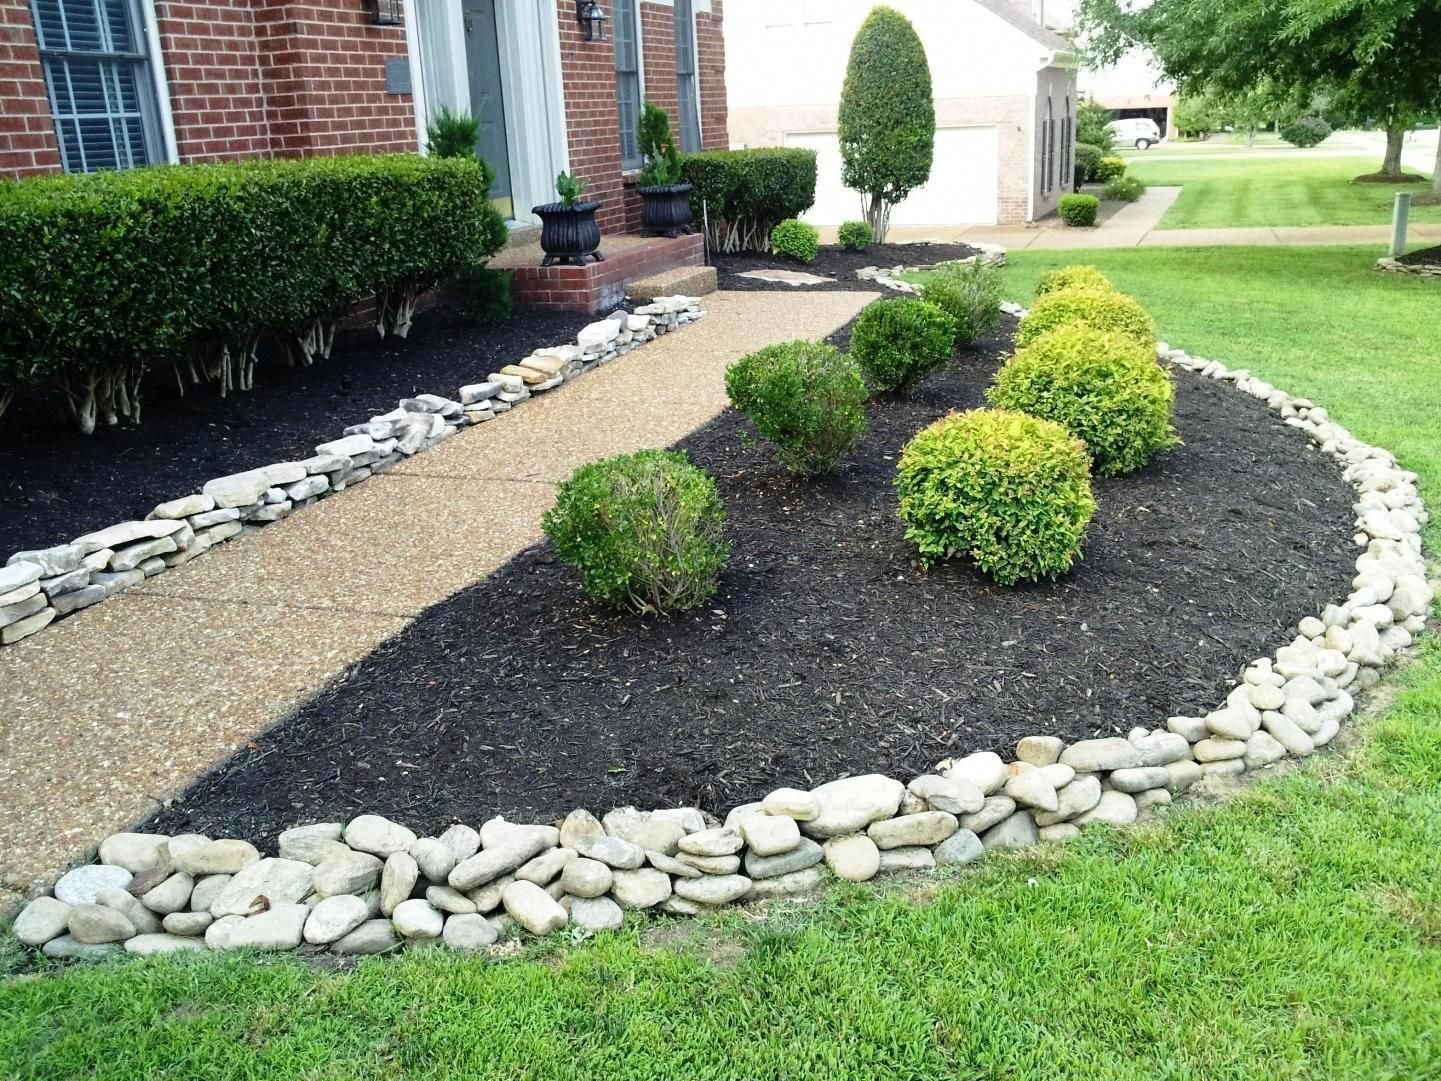 Red House Landscape With White Rock River Rock Landscaping Ideas Home Design And Decor T Stone Landscaping Landscaping With Rocks Cheap Landscaping Ideas